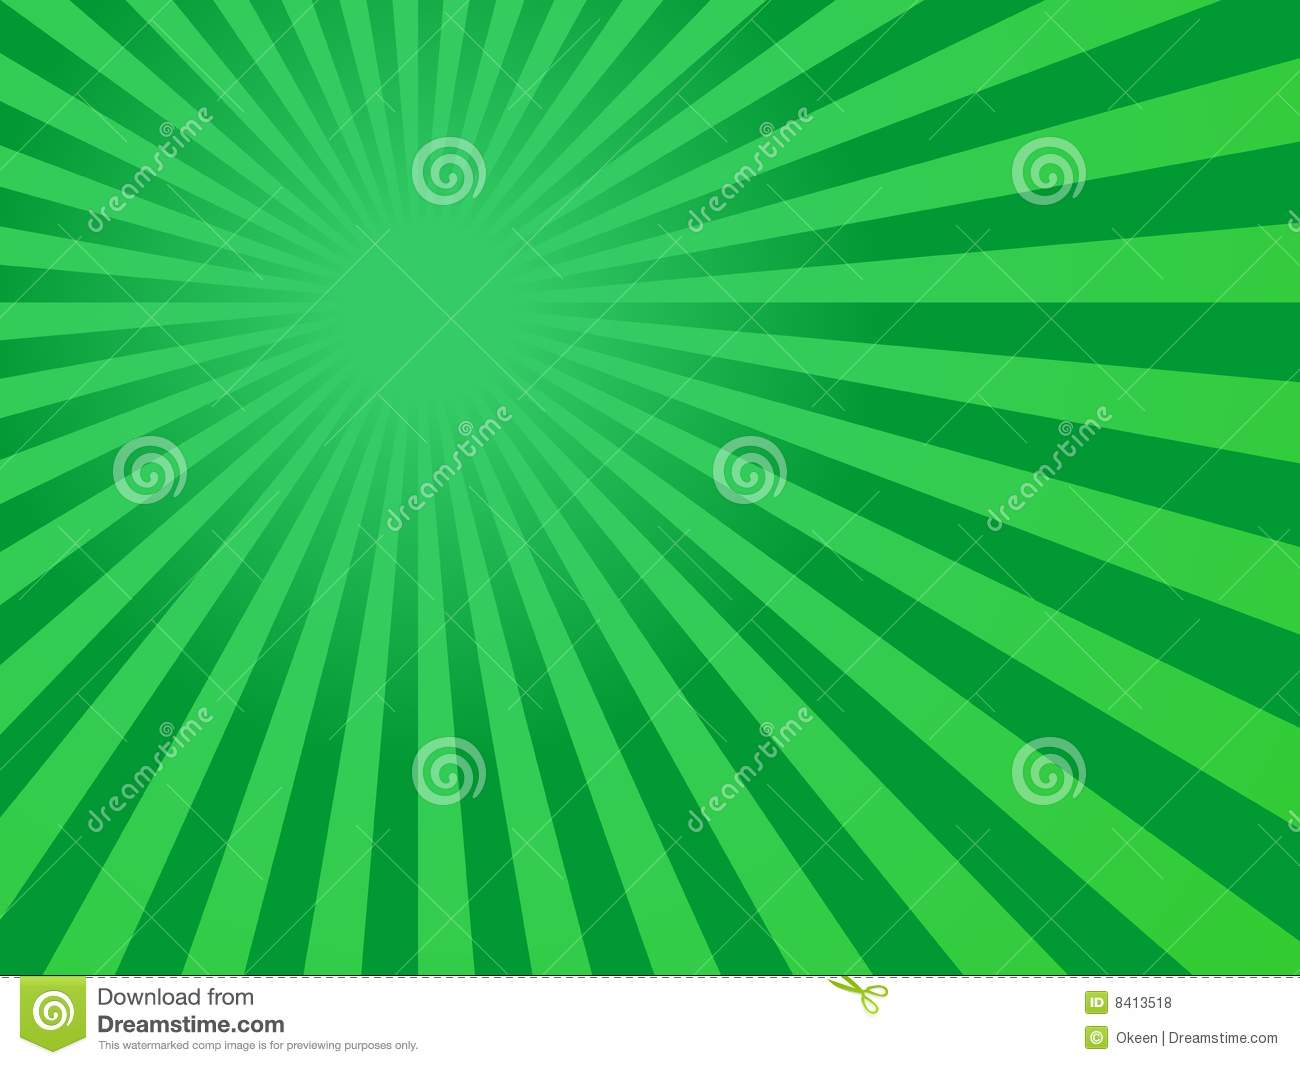 green rays background - photo #12